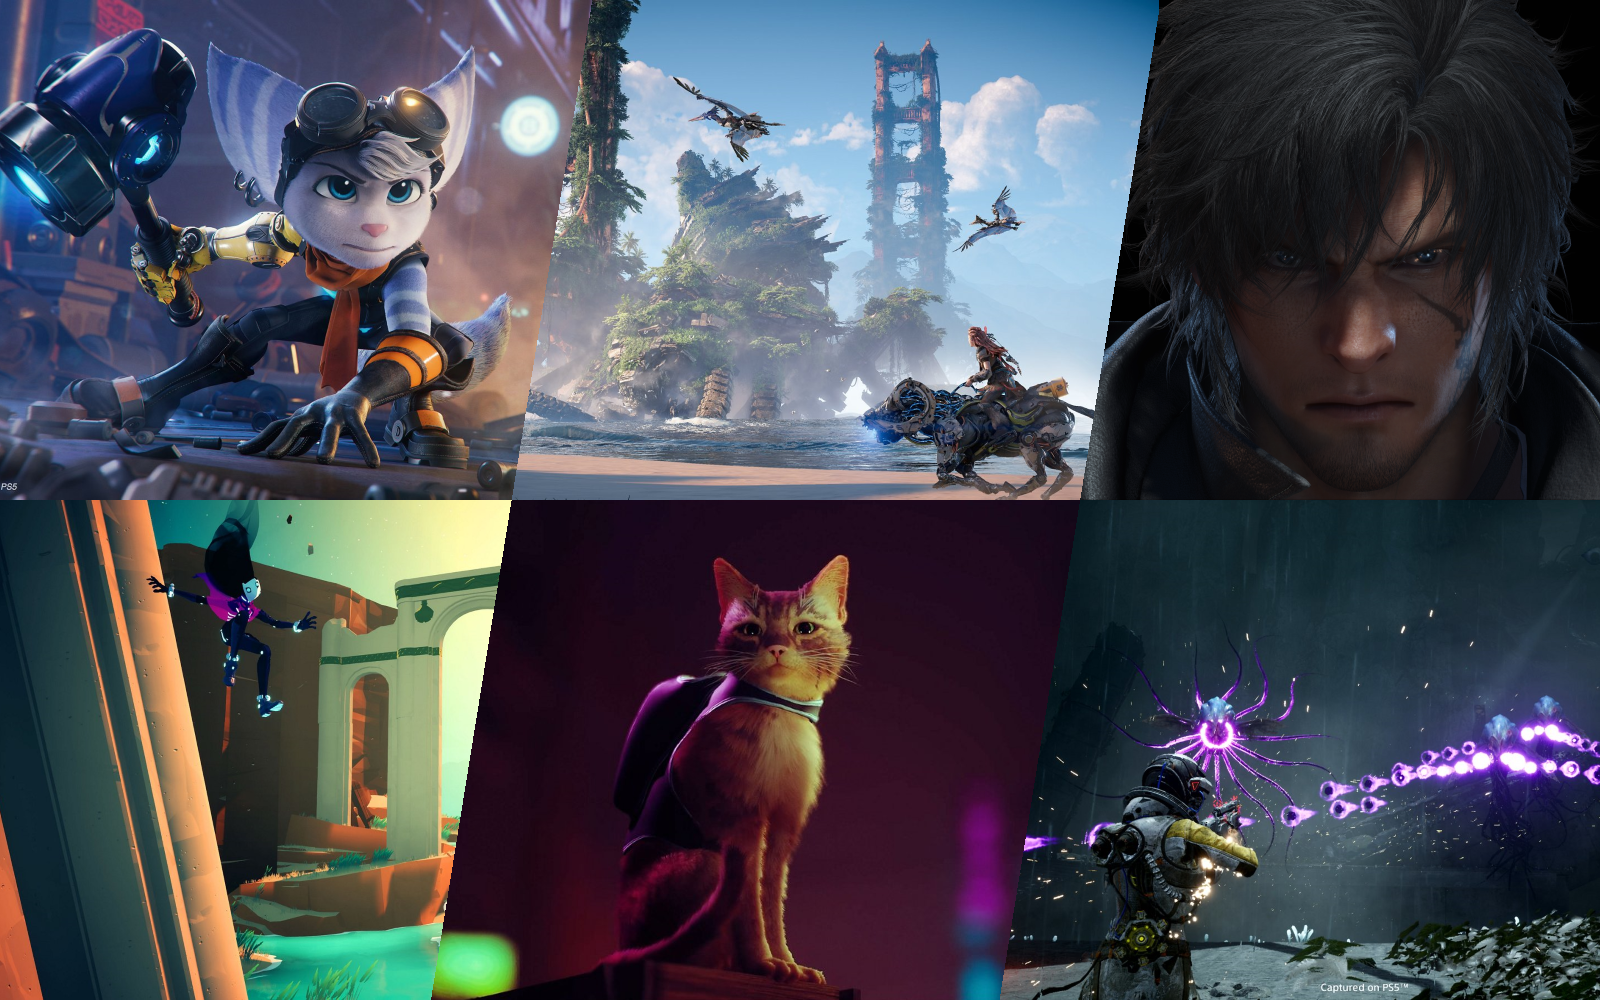 Upcoming PlayStation Studios And Timed Exclusives For PS5 In 2021